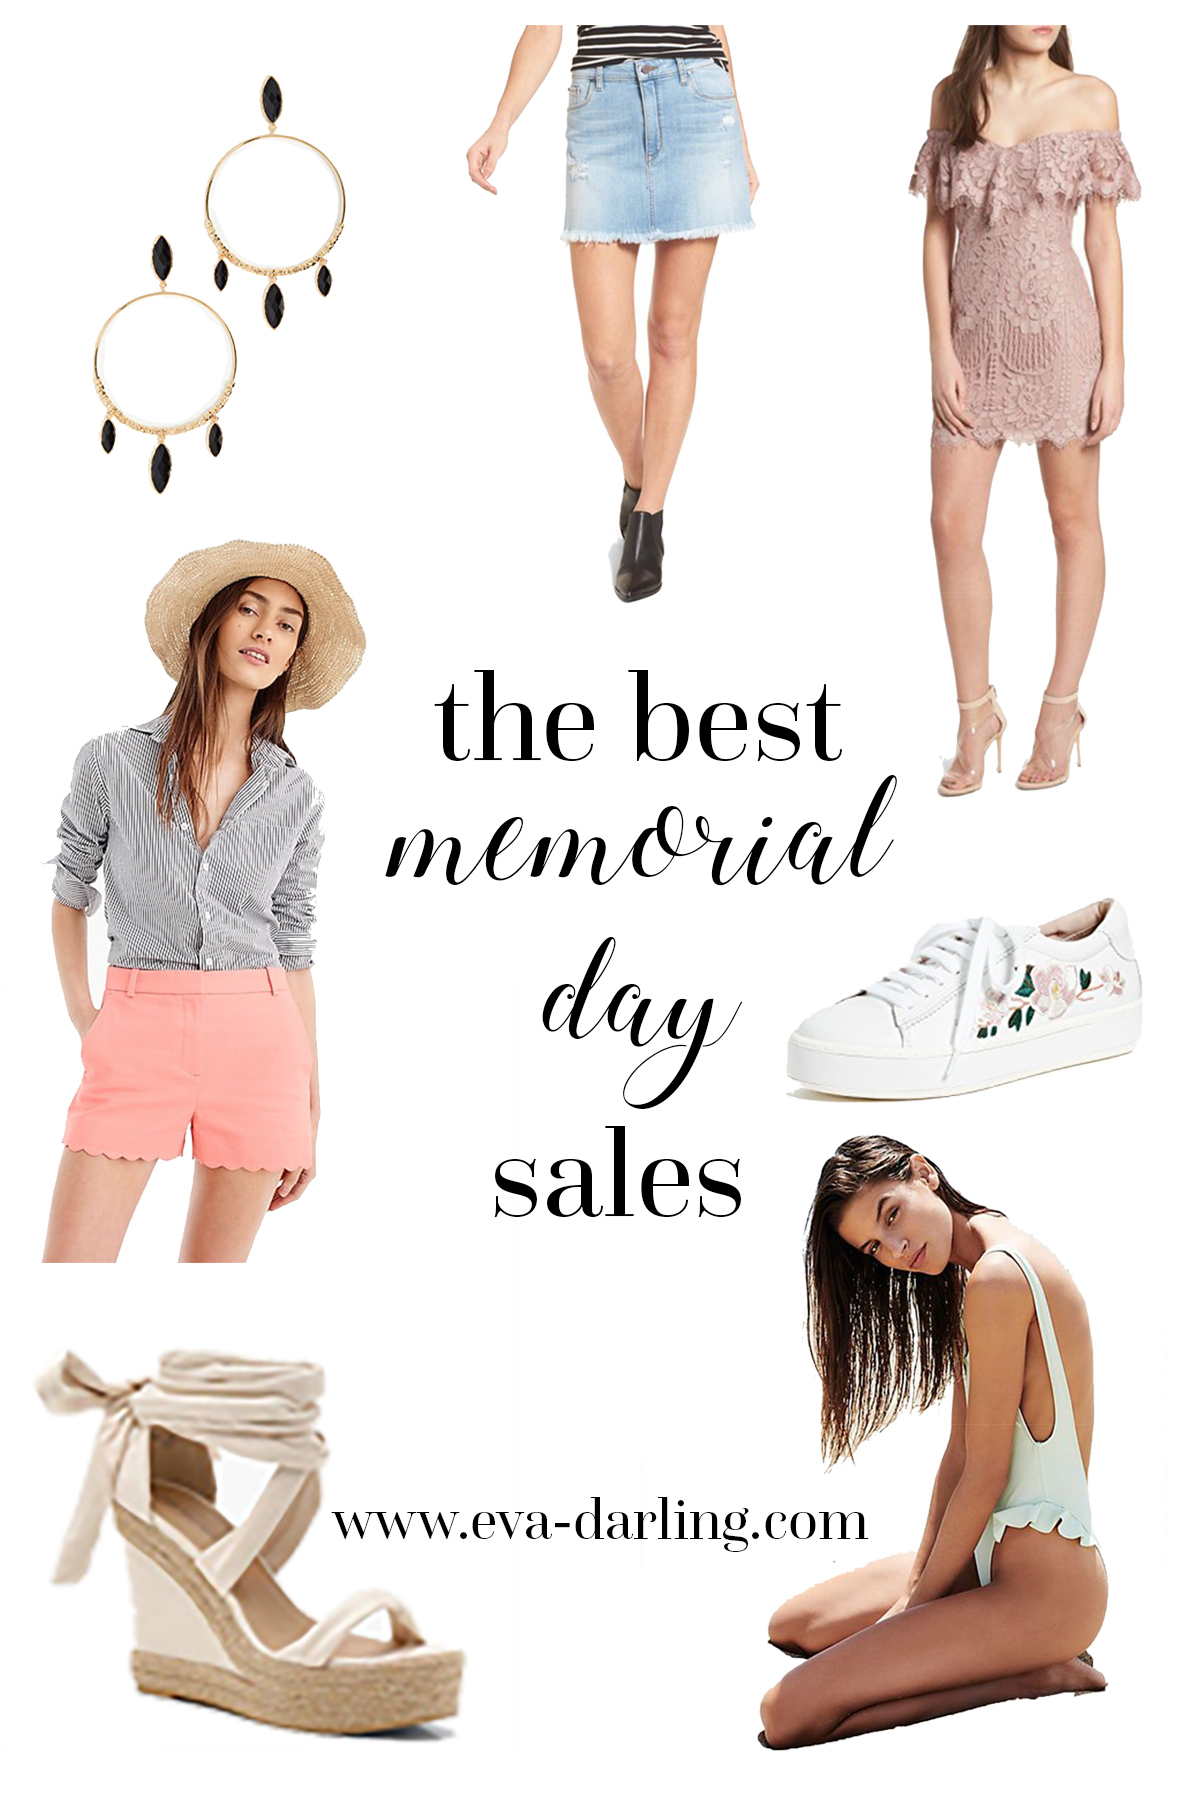 memorial day sale sales roundup j. crew nordstrom free people shopbop boohoo anthropologie saks fifth avenue baublebar kate spade new york ksny sneakers embroidered tennis shoes denim miniskirt frayed lace minidress espadrille wedges coral scalloped shorts swimwear one piece swimsuit conservative modest bodysuit leotard model pink black and gold hoop earrings